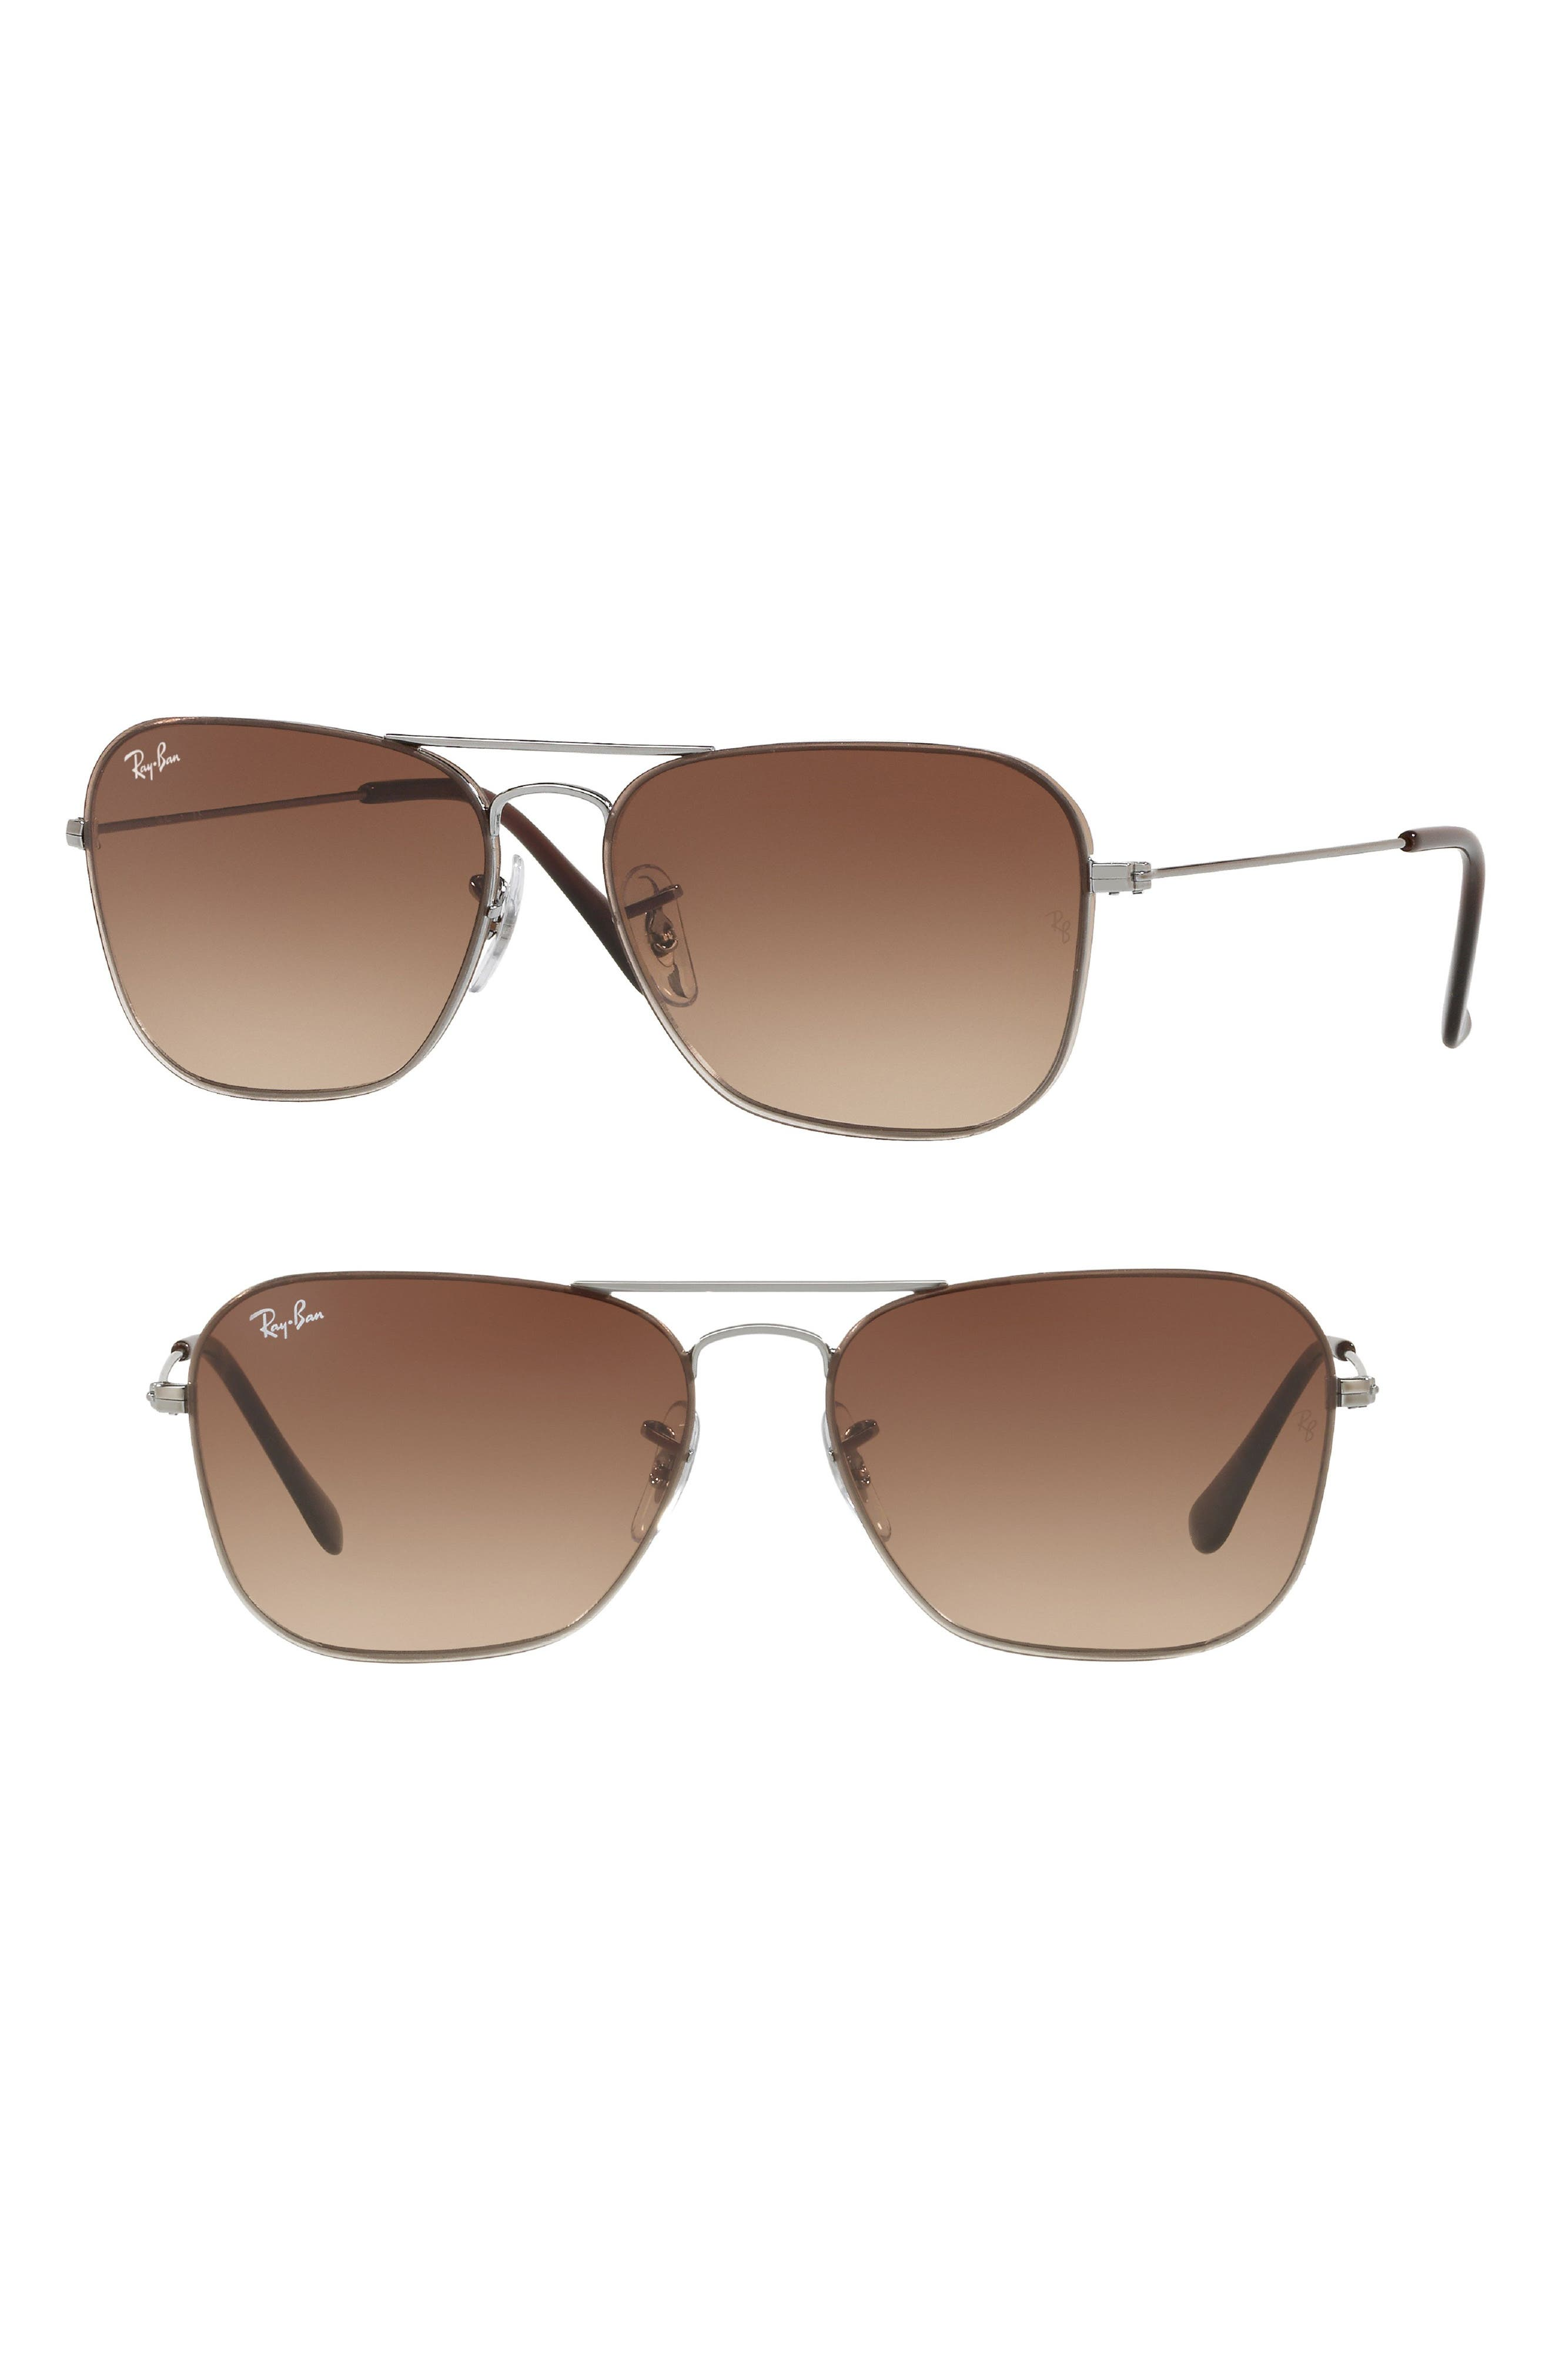 Youngster 56mm Aviator Sunglasses,                         Main,                         color, Gunmetal